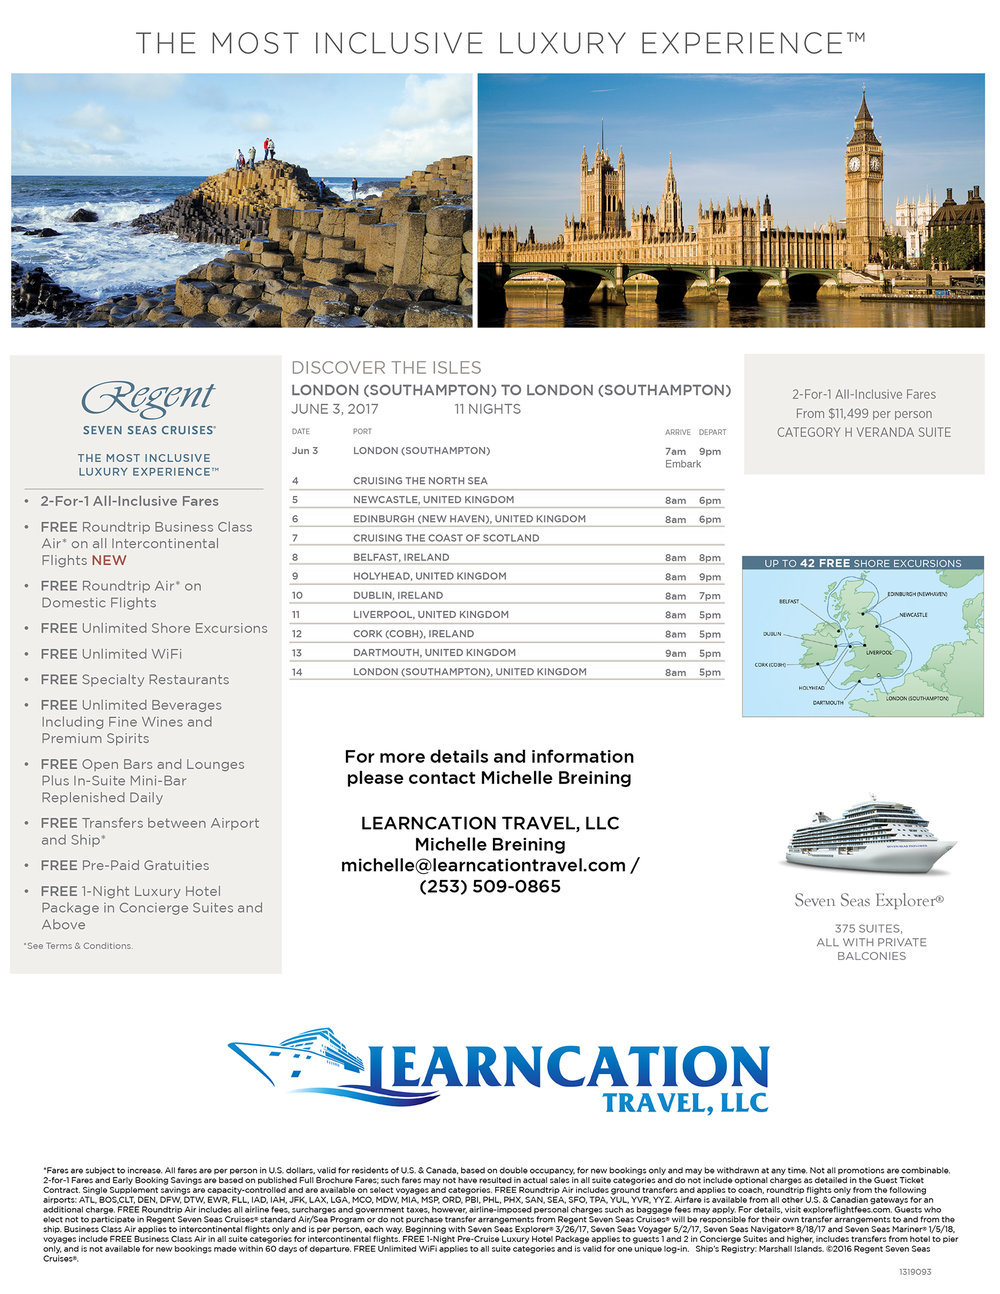 Learncation Travel Explorer Flyer -5.jpg